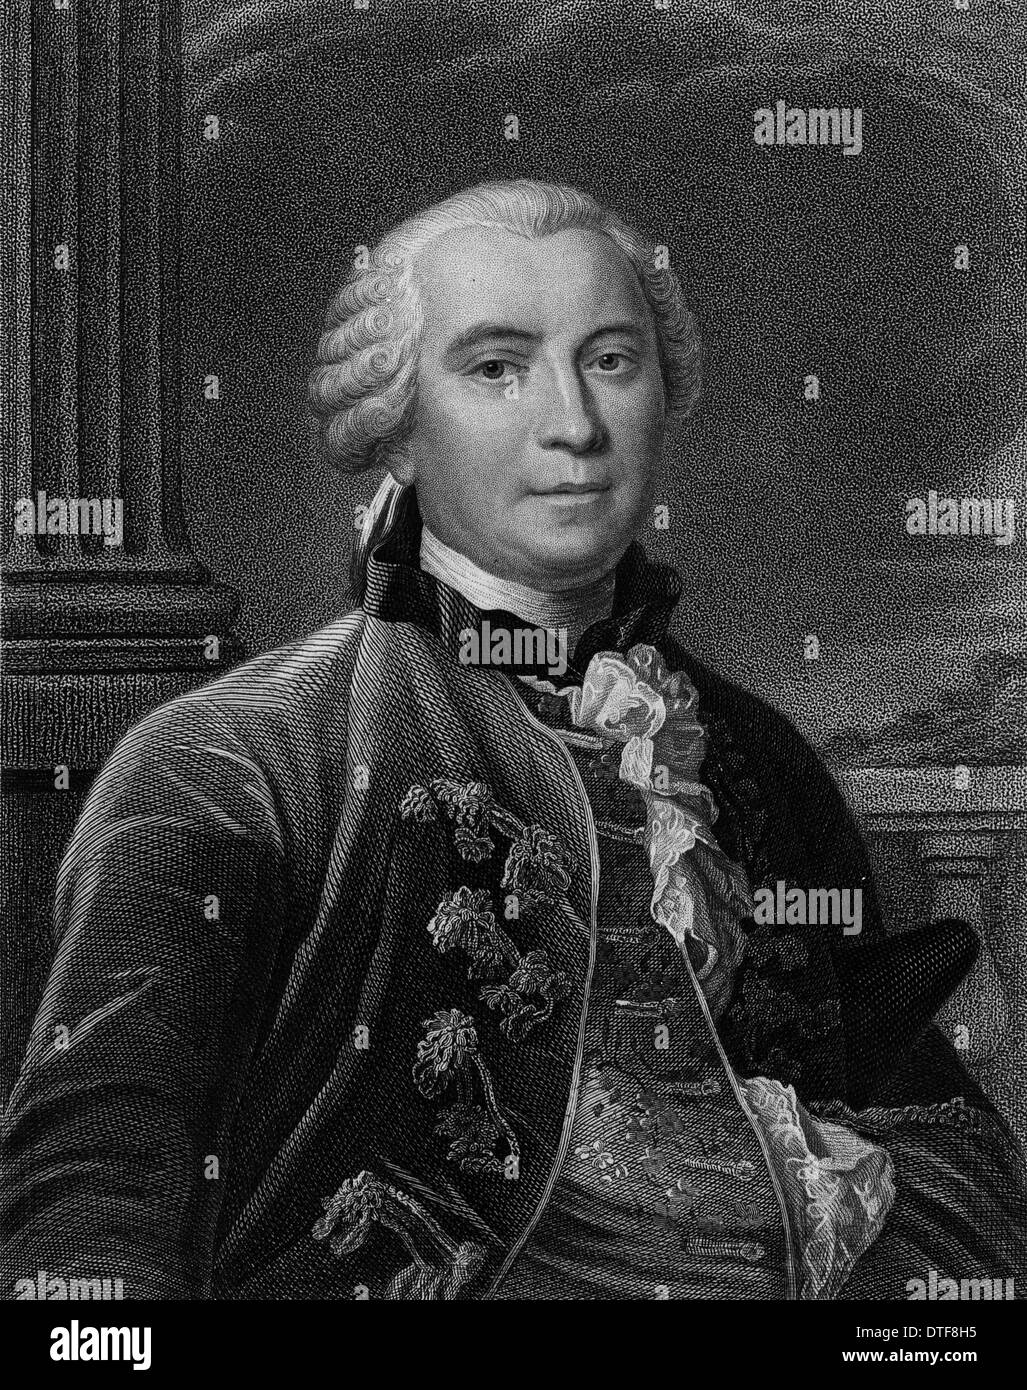 Count Georges Louis Leclerc de Buffon (1707-1788) - Stock Image